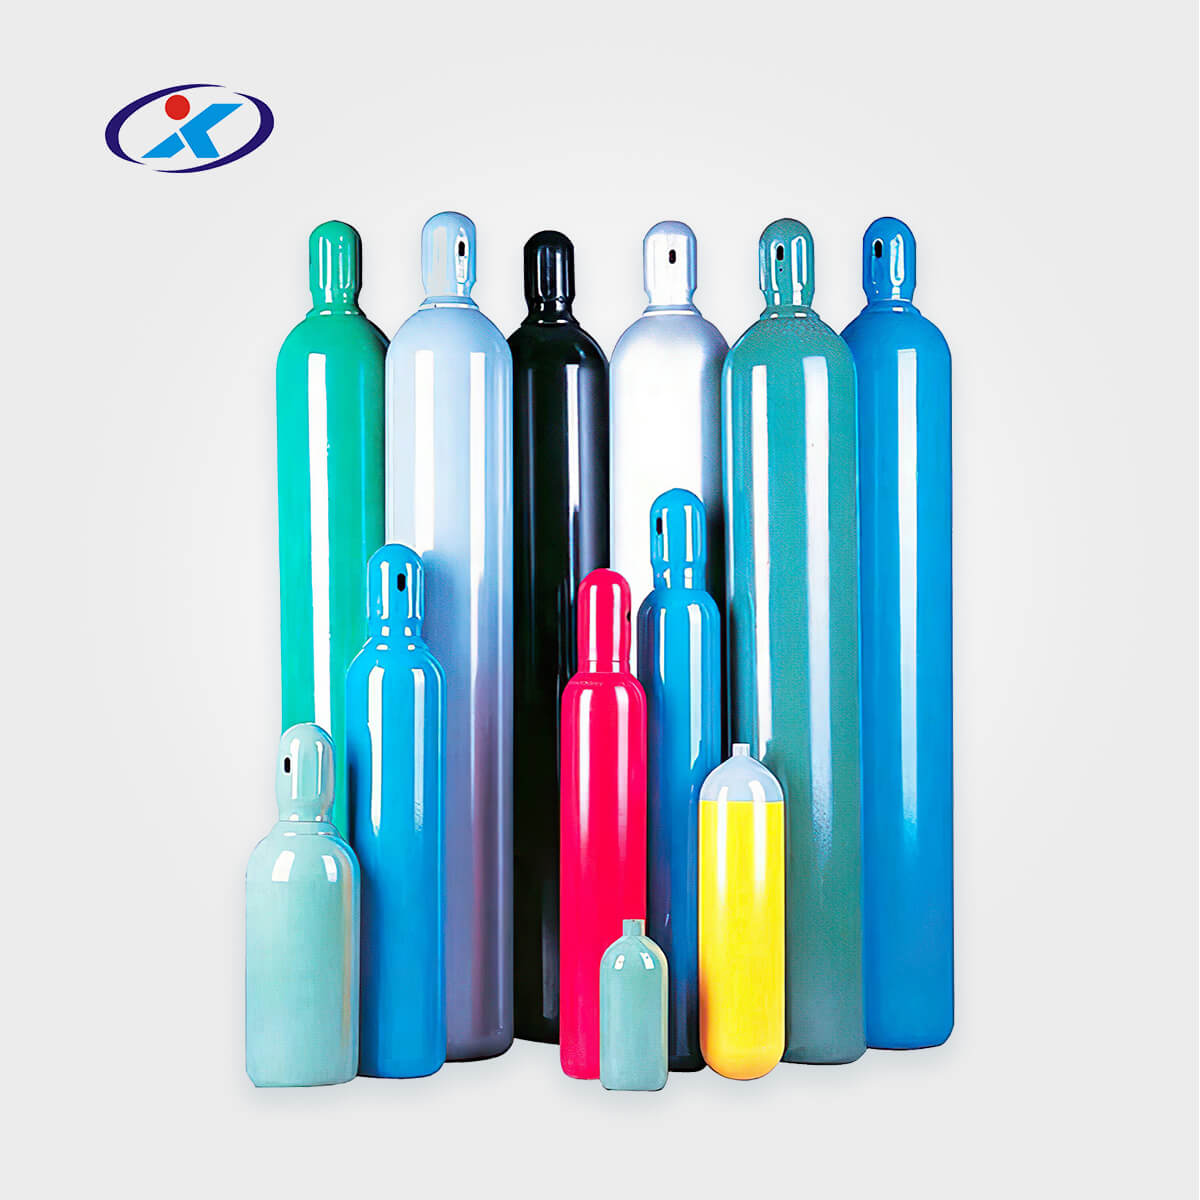 China 99.9% N2o Gas Filled in 8L Cylinder Gas with Valve